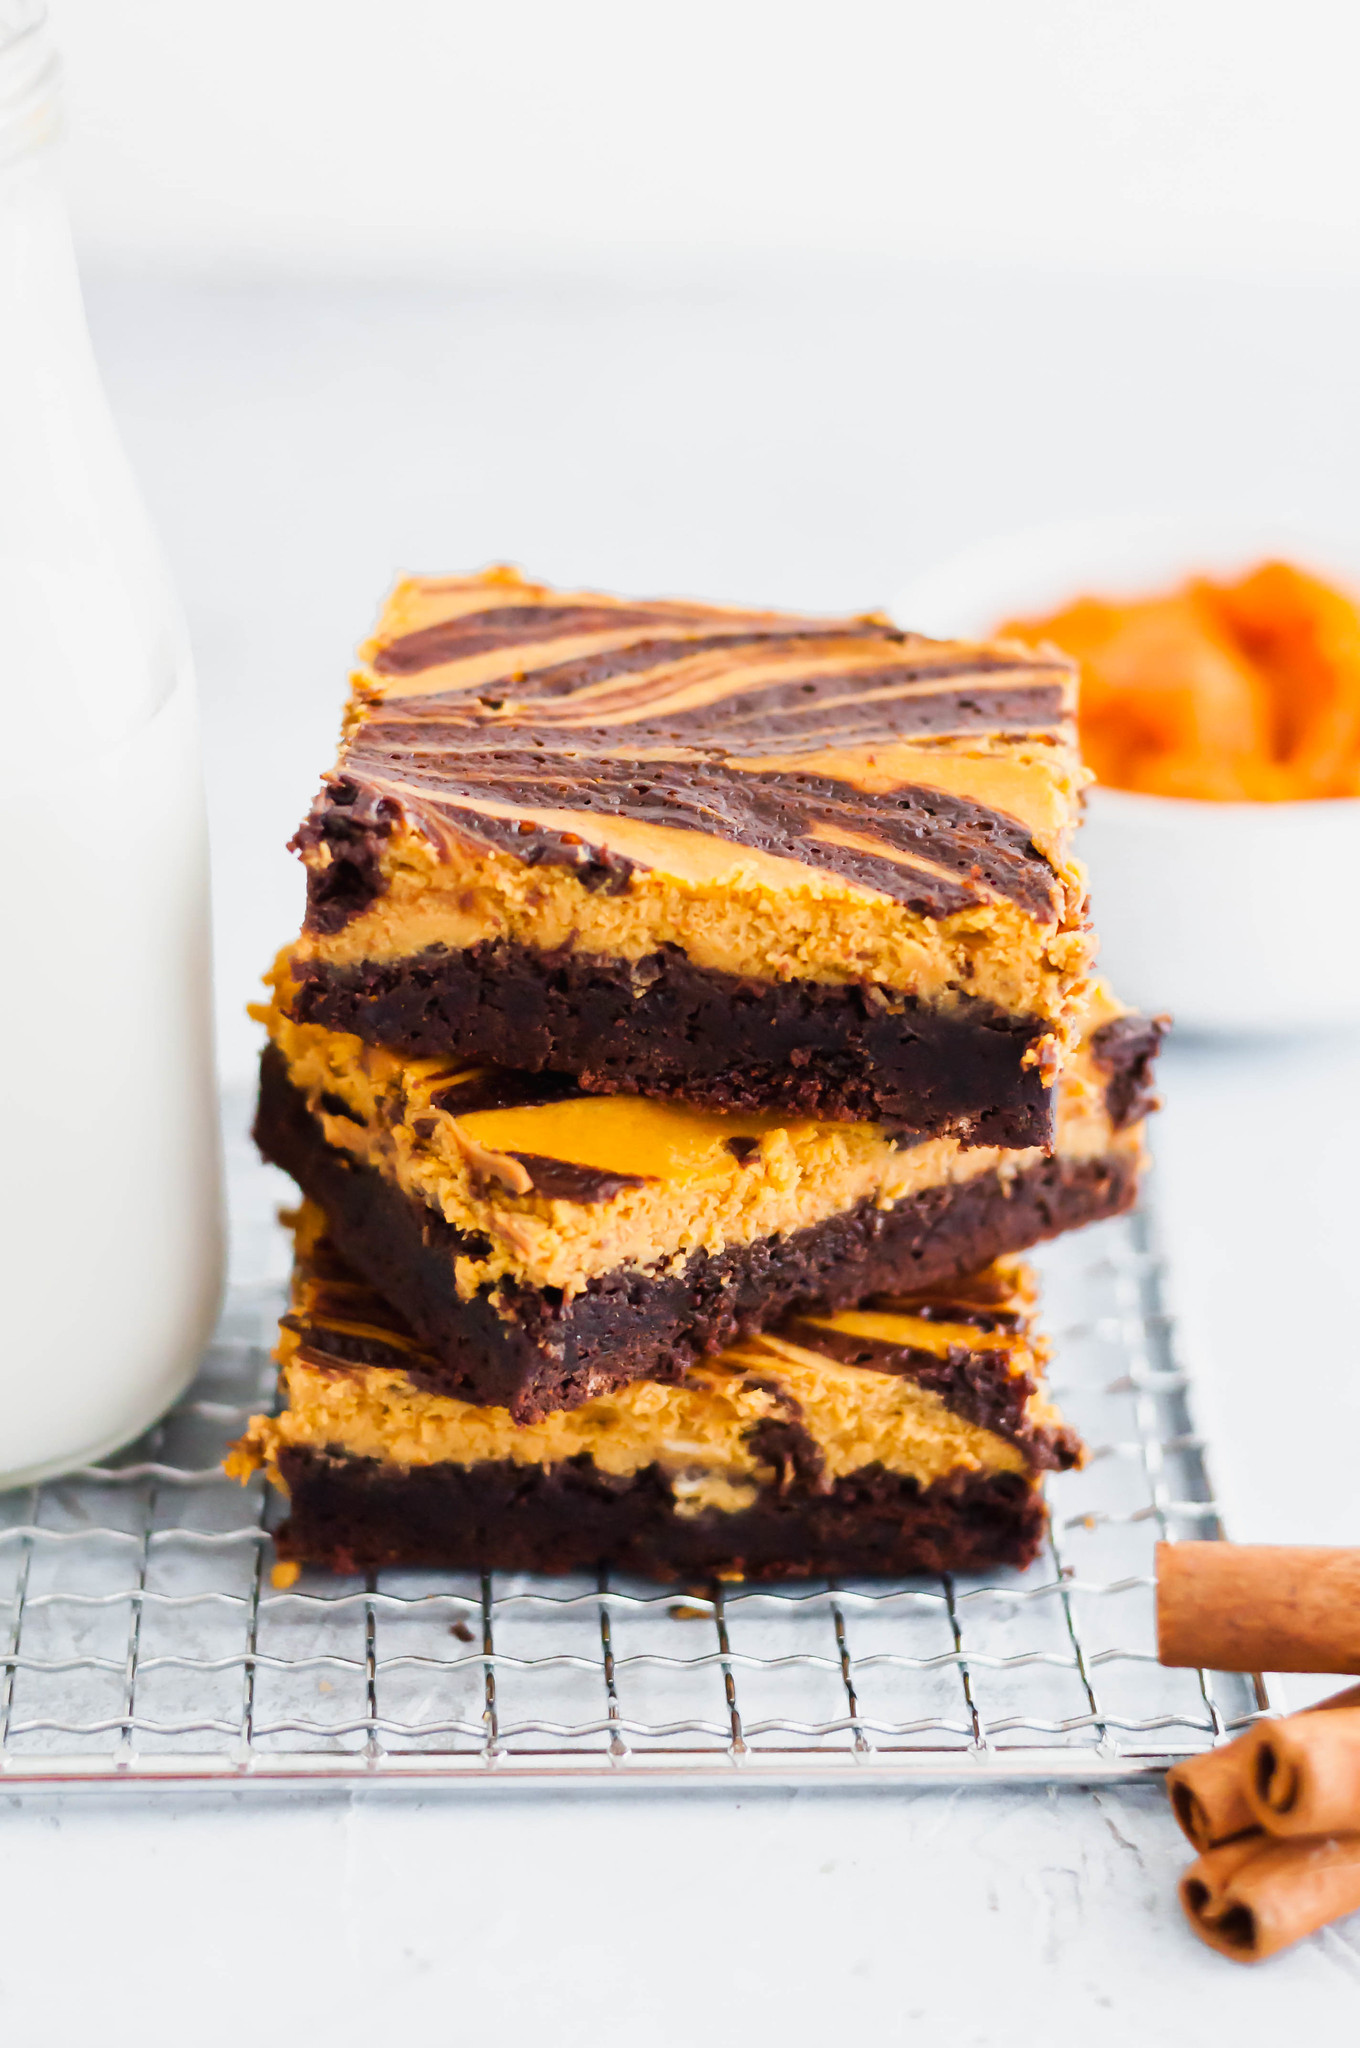 These Pumpkin Cheesecake Brownies are a must try dessert this fall. Thick, fudgy one pot brownies topped with a simple, delicious spiced pumpkin cheesecake. Fall perfection.